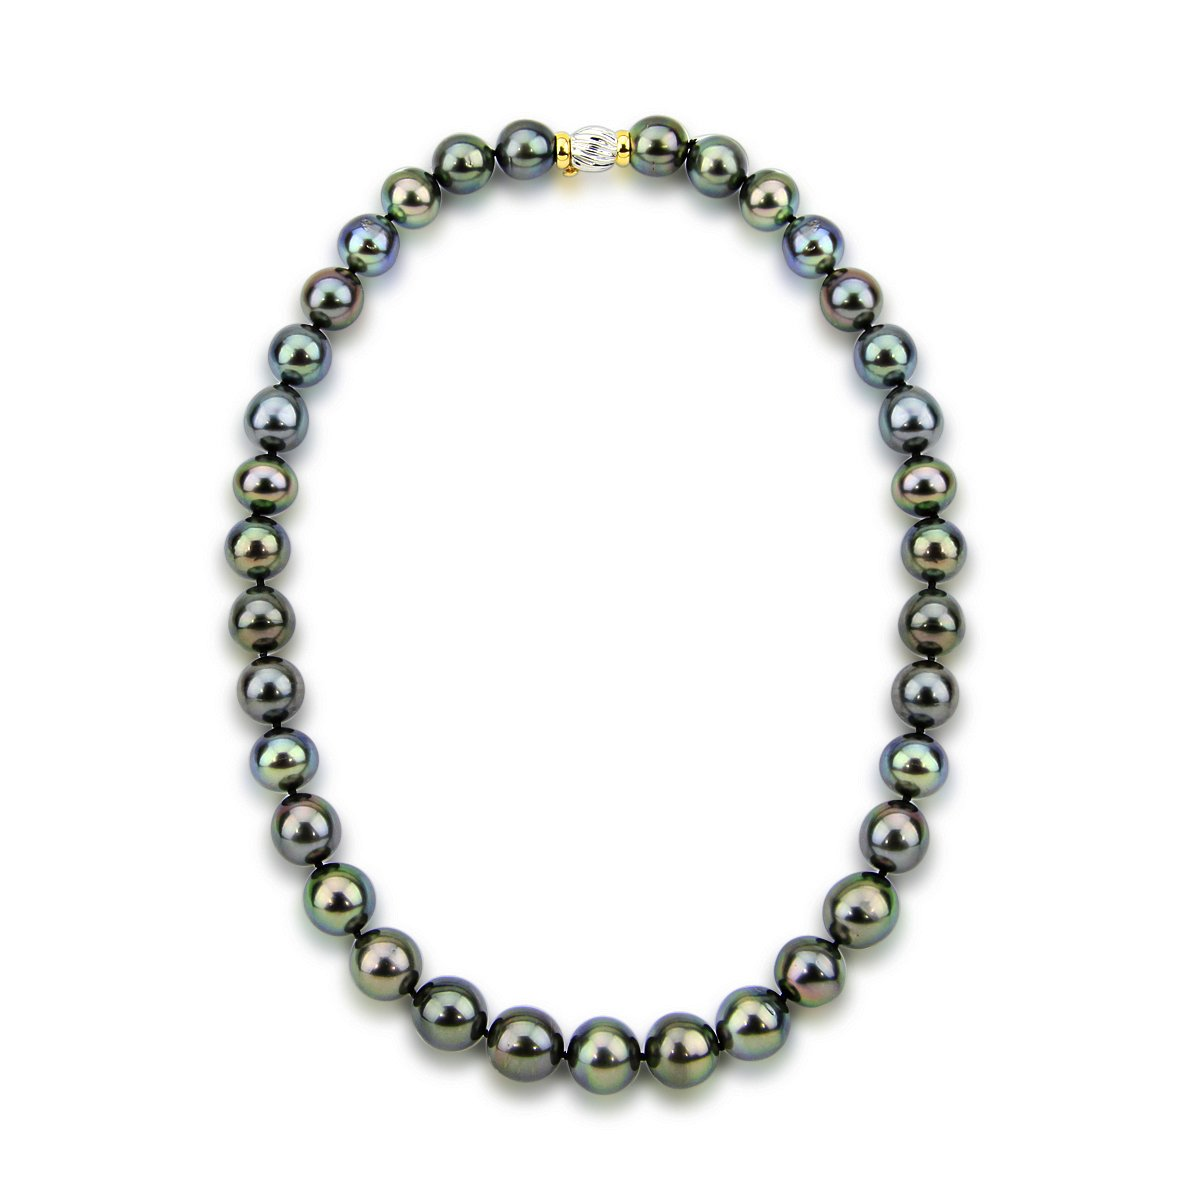 11-13mm Black Tahitian Cultured Pearl Necklace 17.5?AAA Quality with 14K Yellow and White Gold Clasp